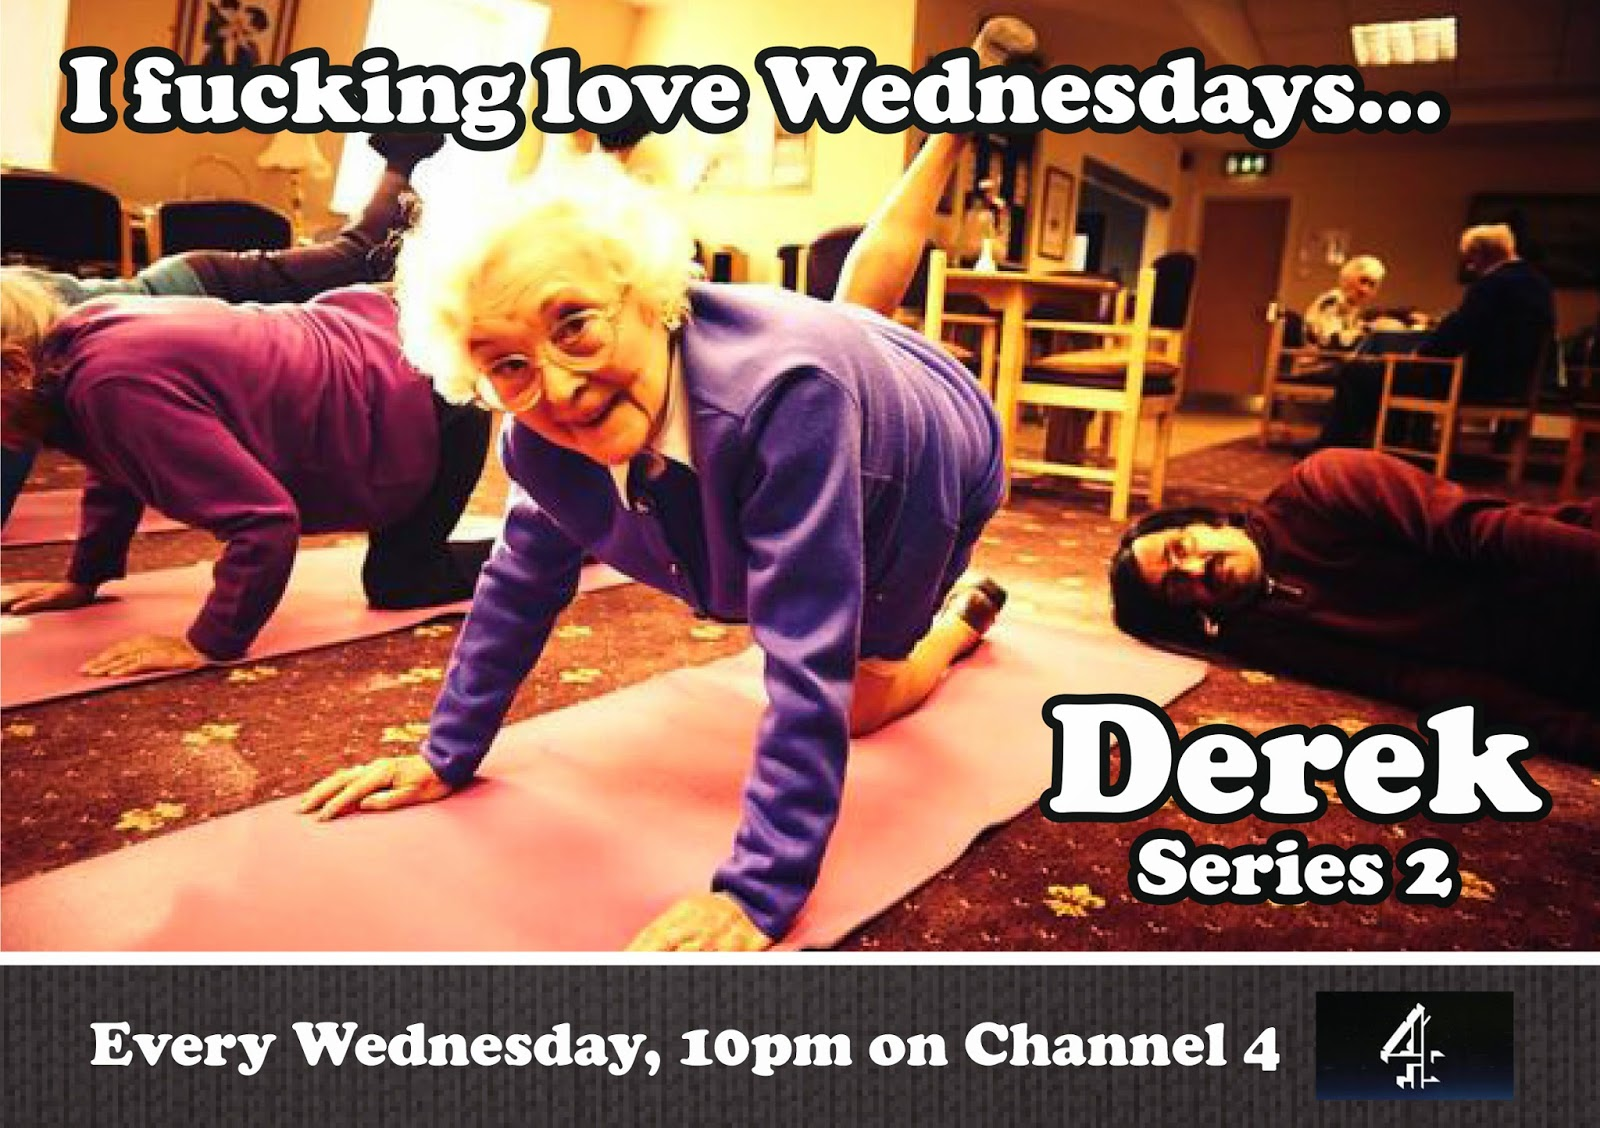 Derek Series 2 every Wednesday on Channel 4